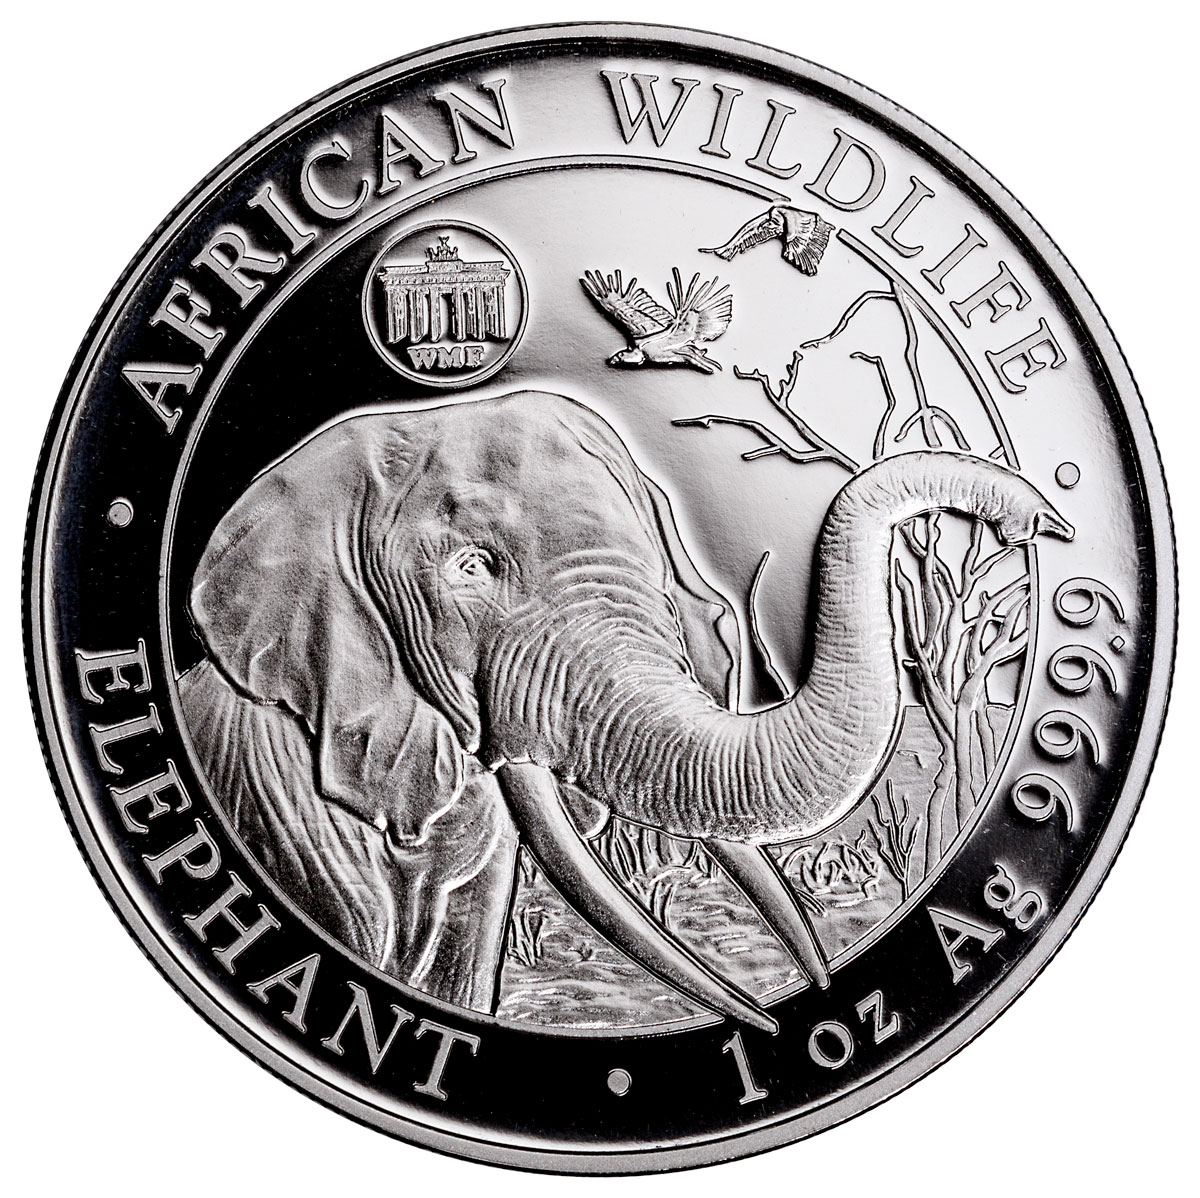 2018 Somalia 1 oz Silver Elephant - Berlin World Money Fair Privy Prooflike Sh100 Coin GEM BU